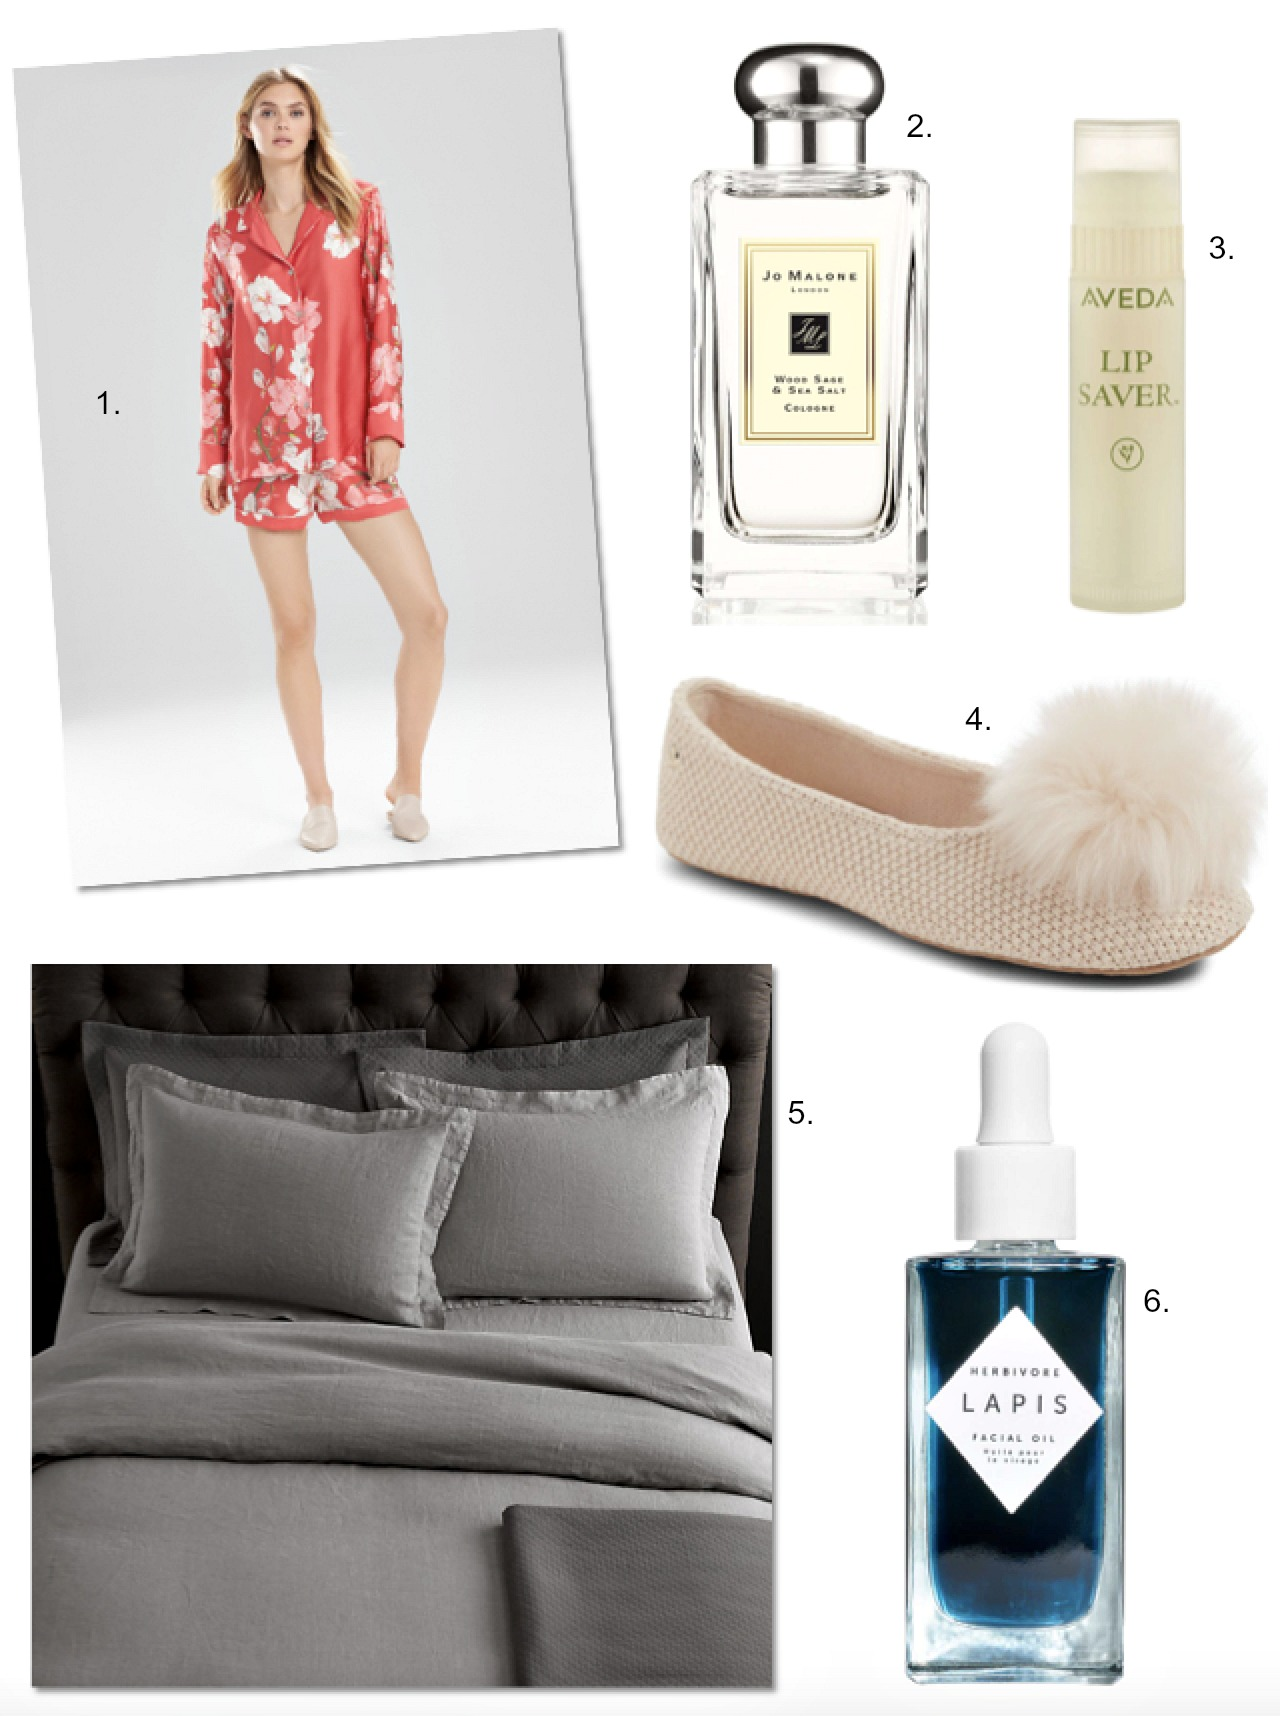 bedtime luxury sleepwear linen sheets ugg slippers jo malone wood sage and sea salt perfume